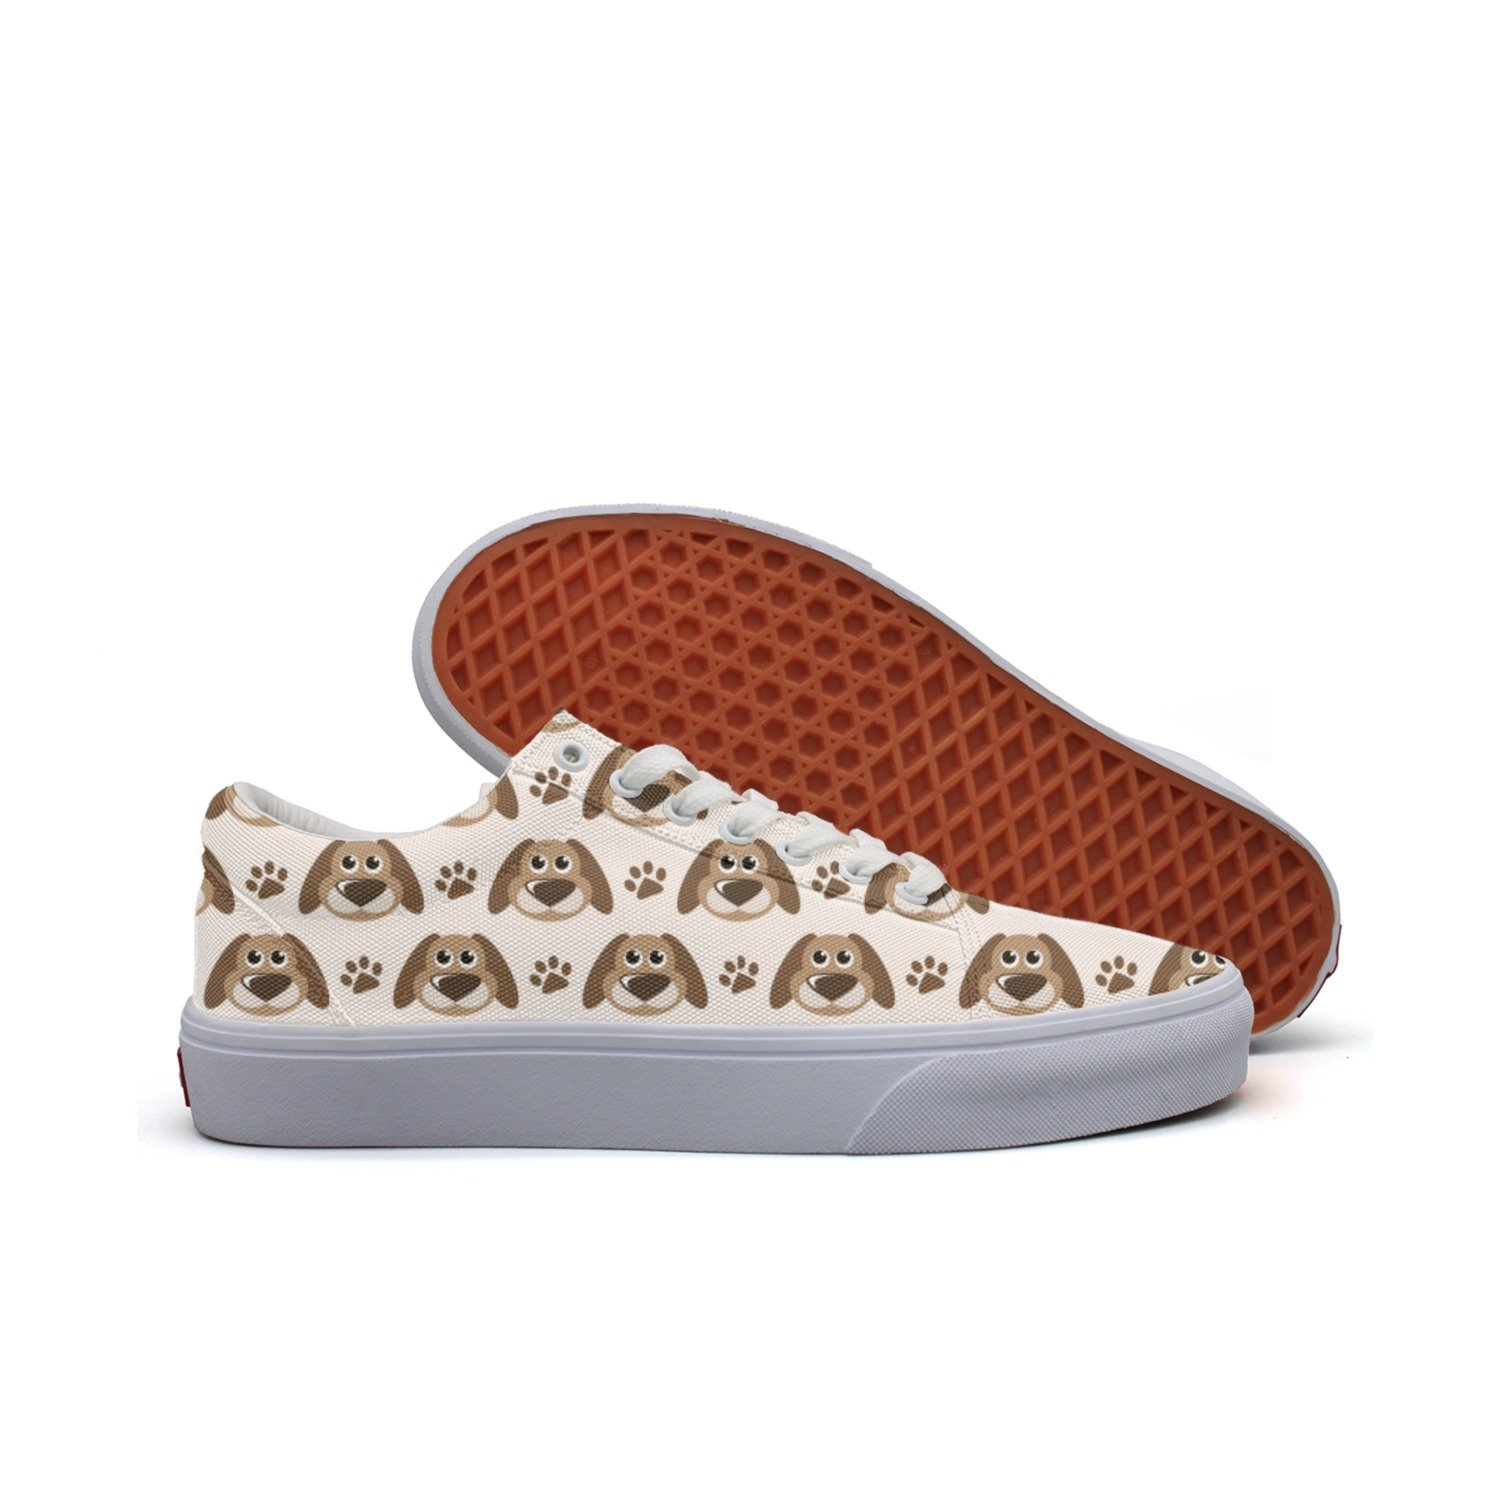 Charmarm Playing Dog Funny Purebred Puppy Womens Cozy Low Top Canvas Skate Shoes